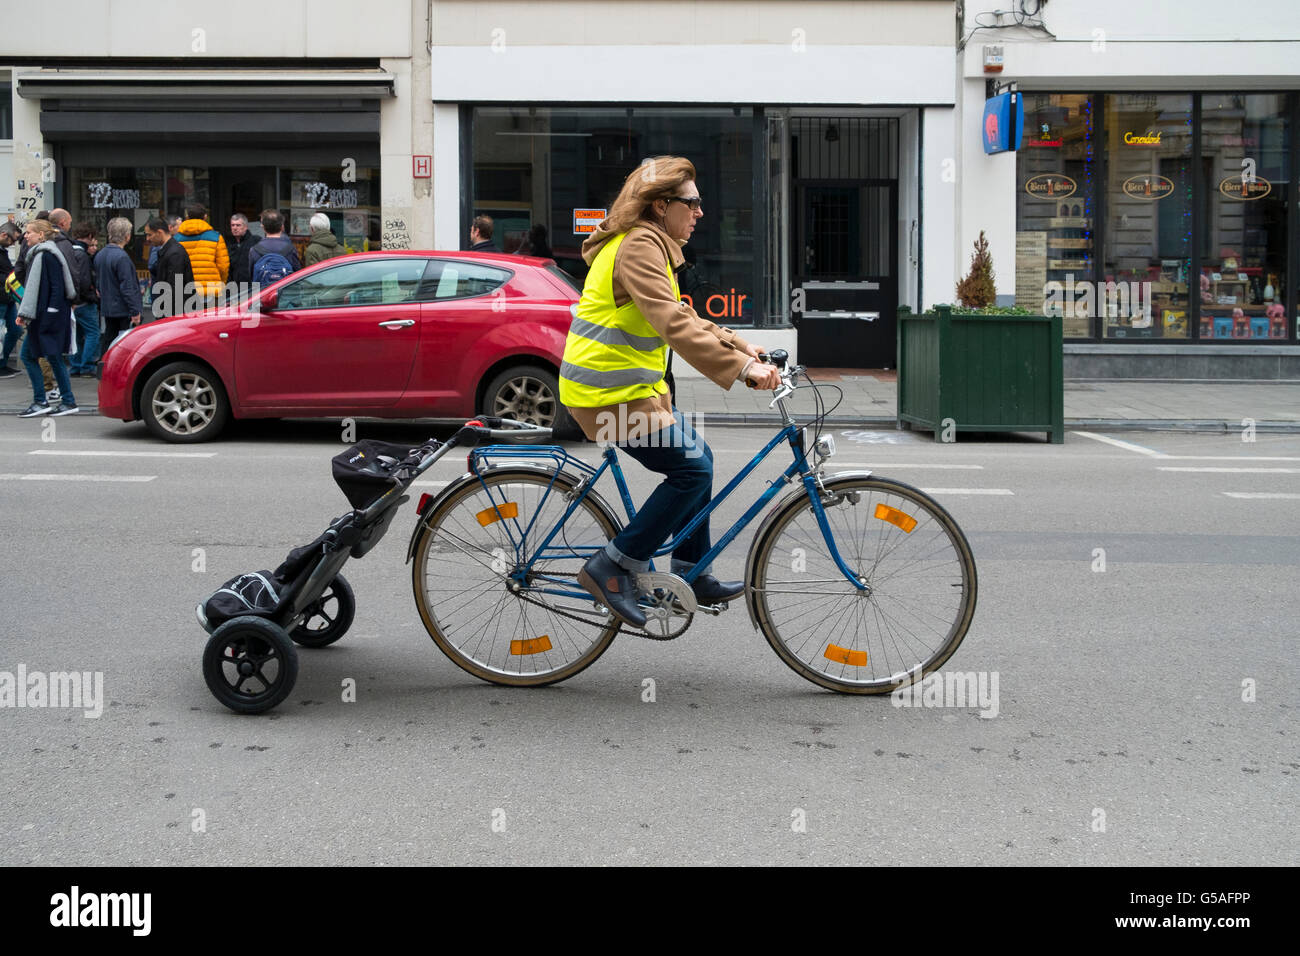 woman cycling bicycle shopping caddy attached - Stock Image